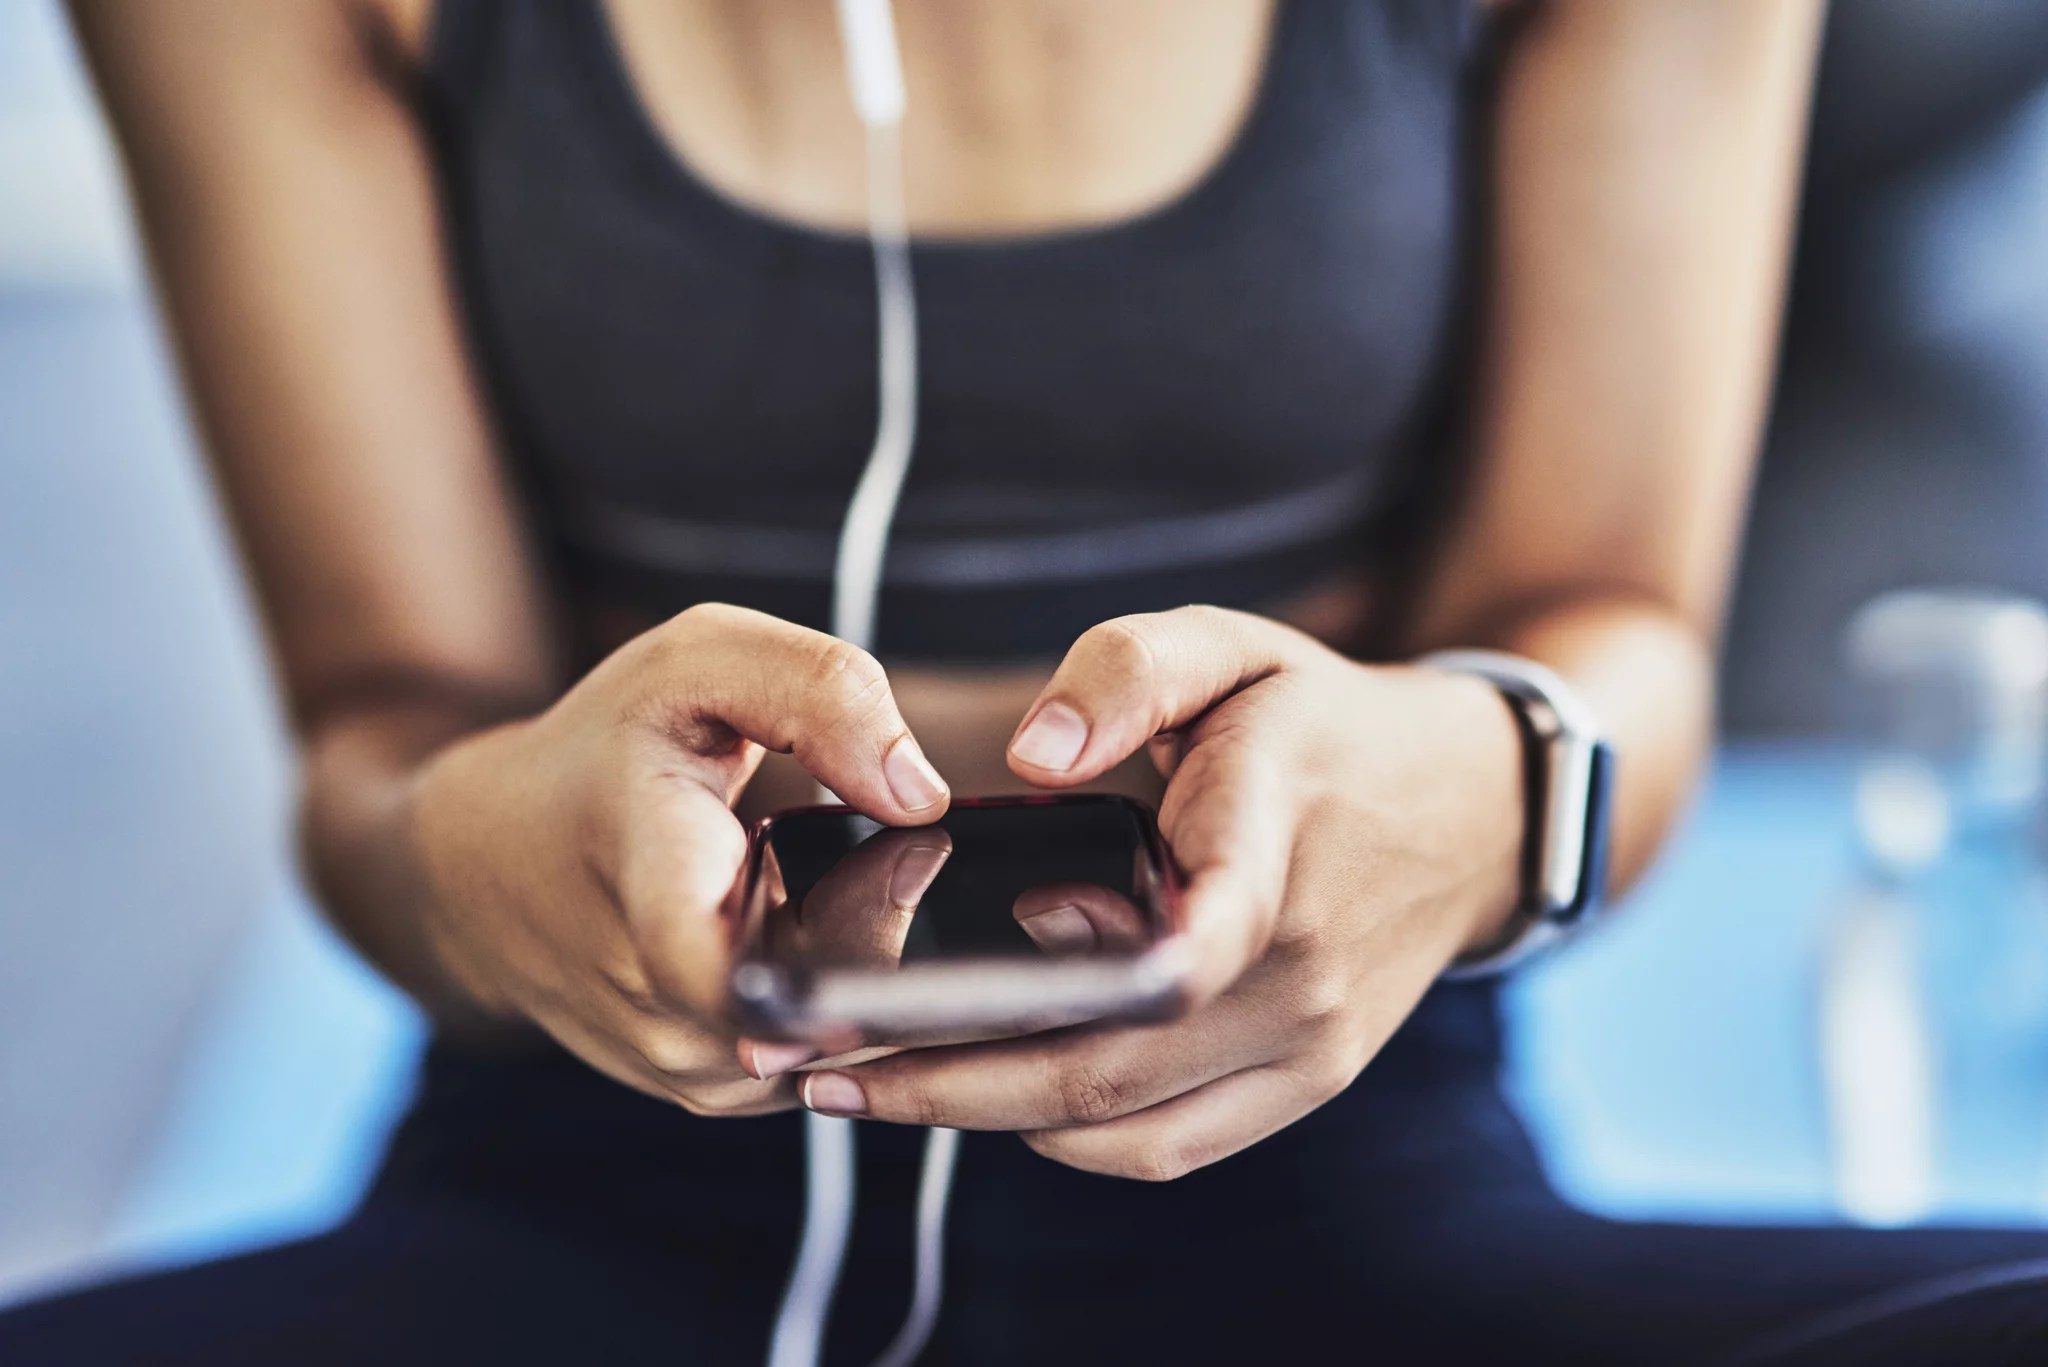 Closeup shot of a sporty woman using a cellphone while exercising in a studio